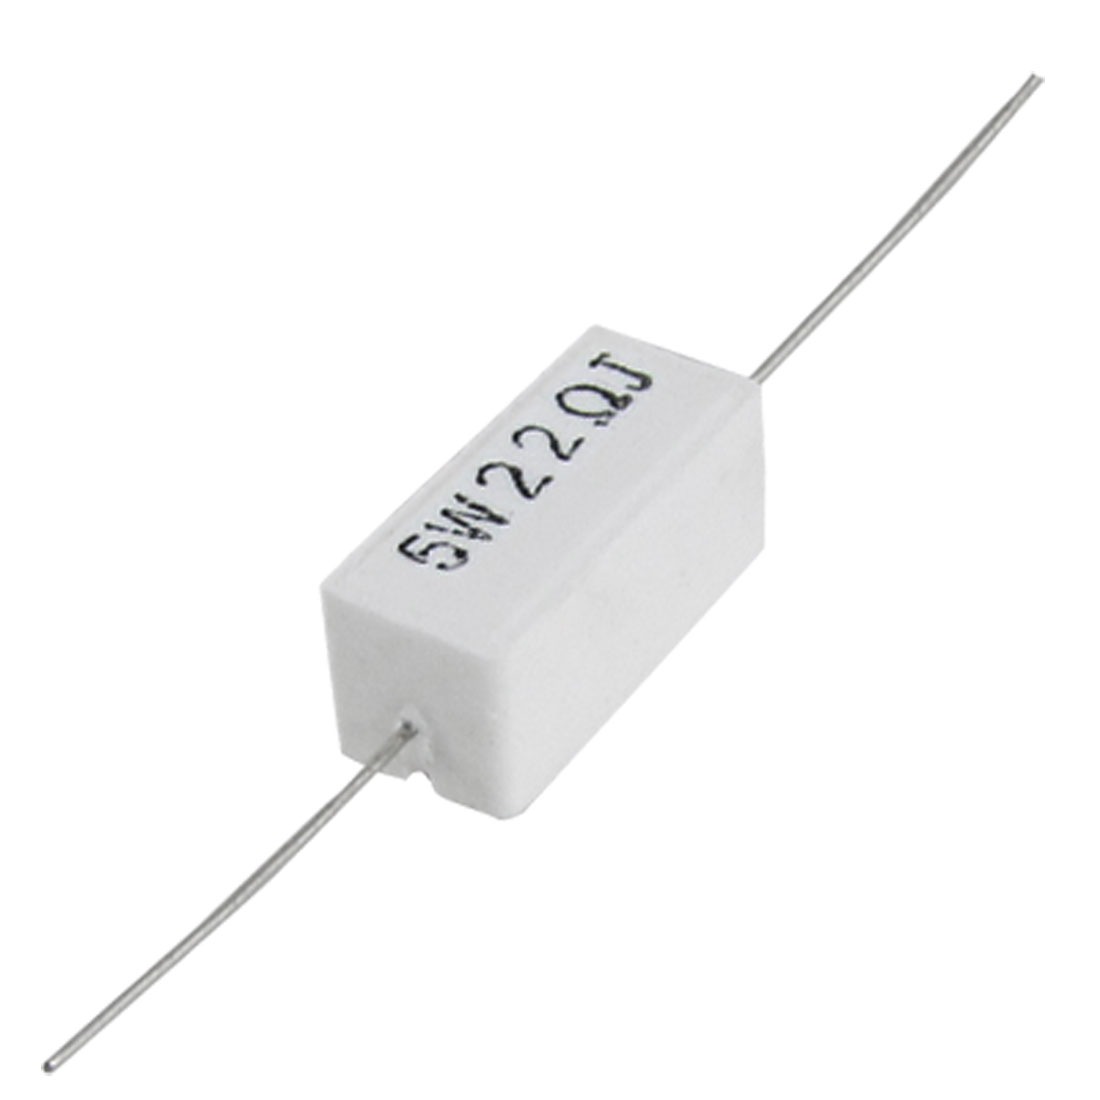 10 Pcs 5W Watt 22 Ohm 5% Axial Wirewound Cement Resistor